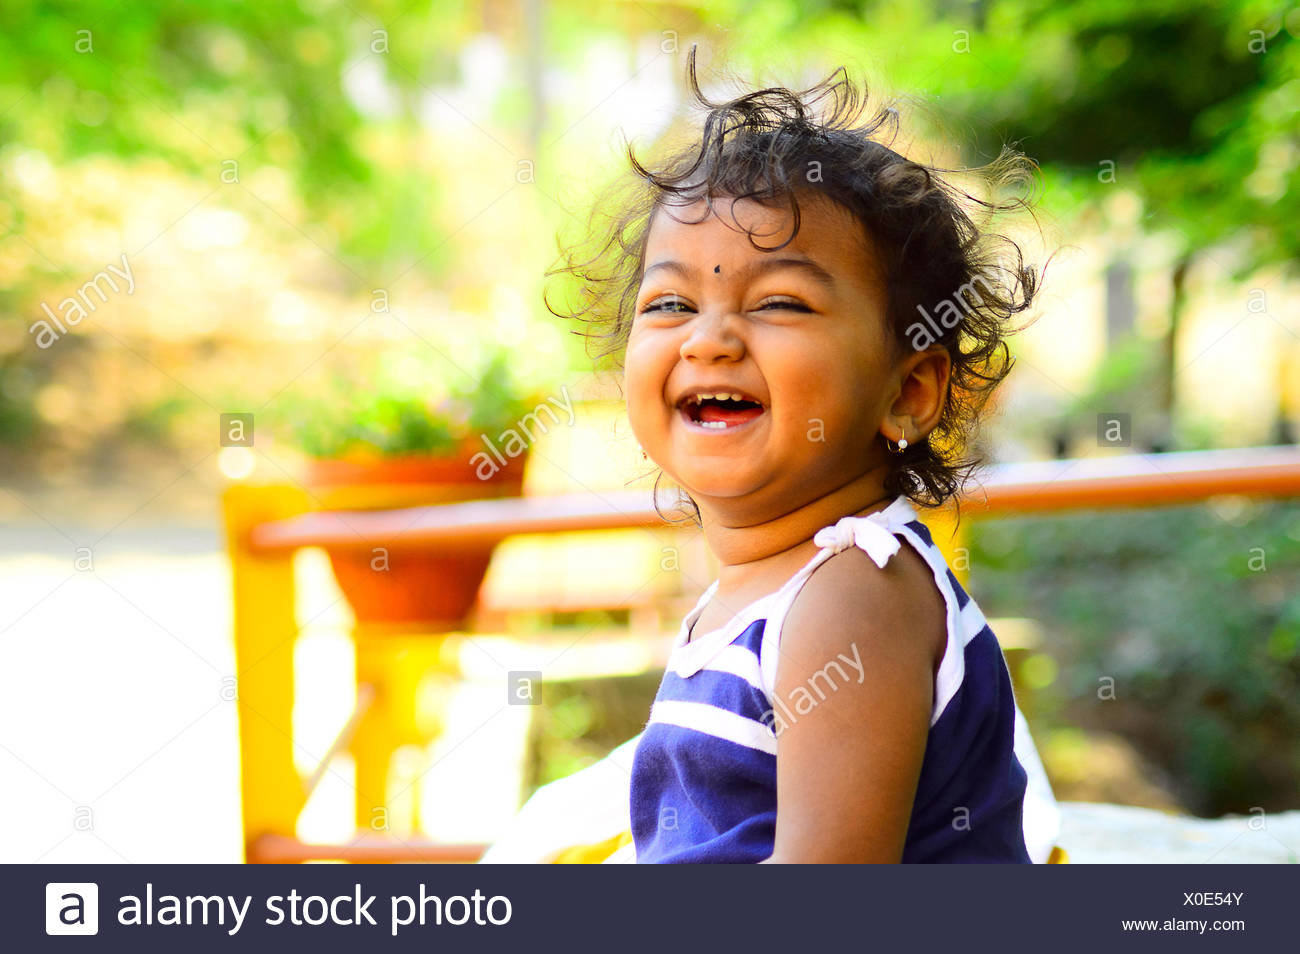 cute baby laughing facing camera stock photo: 275677275 - alamy